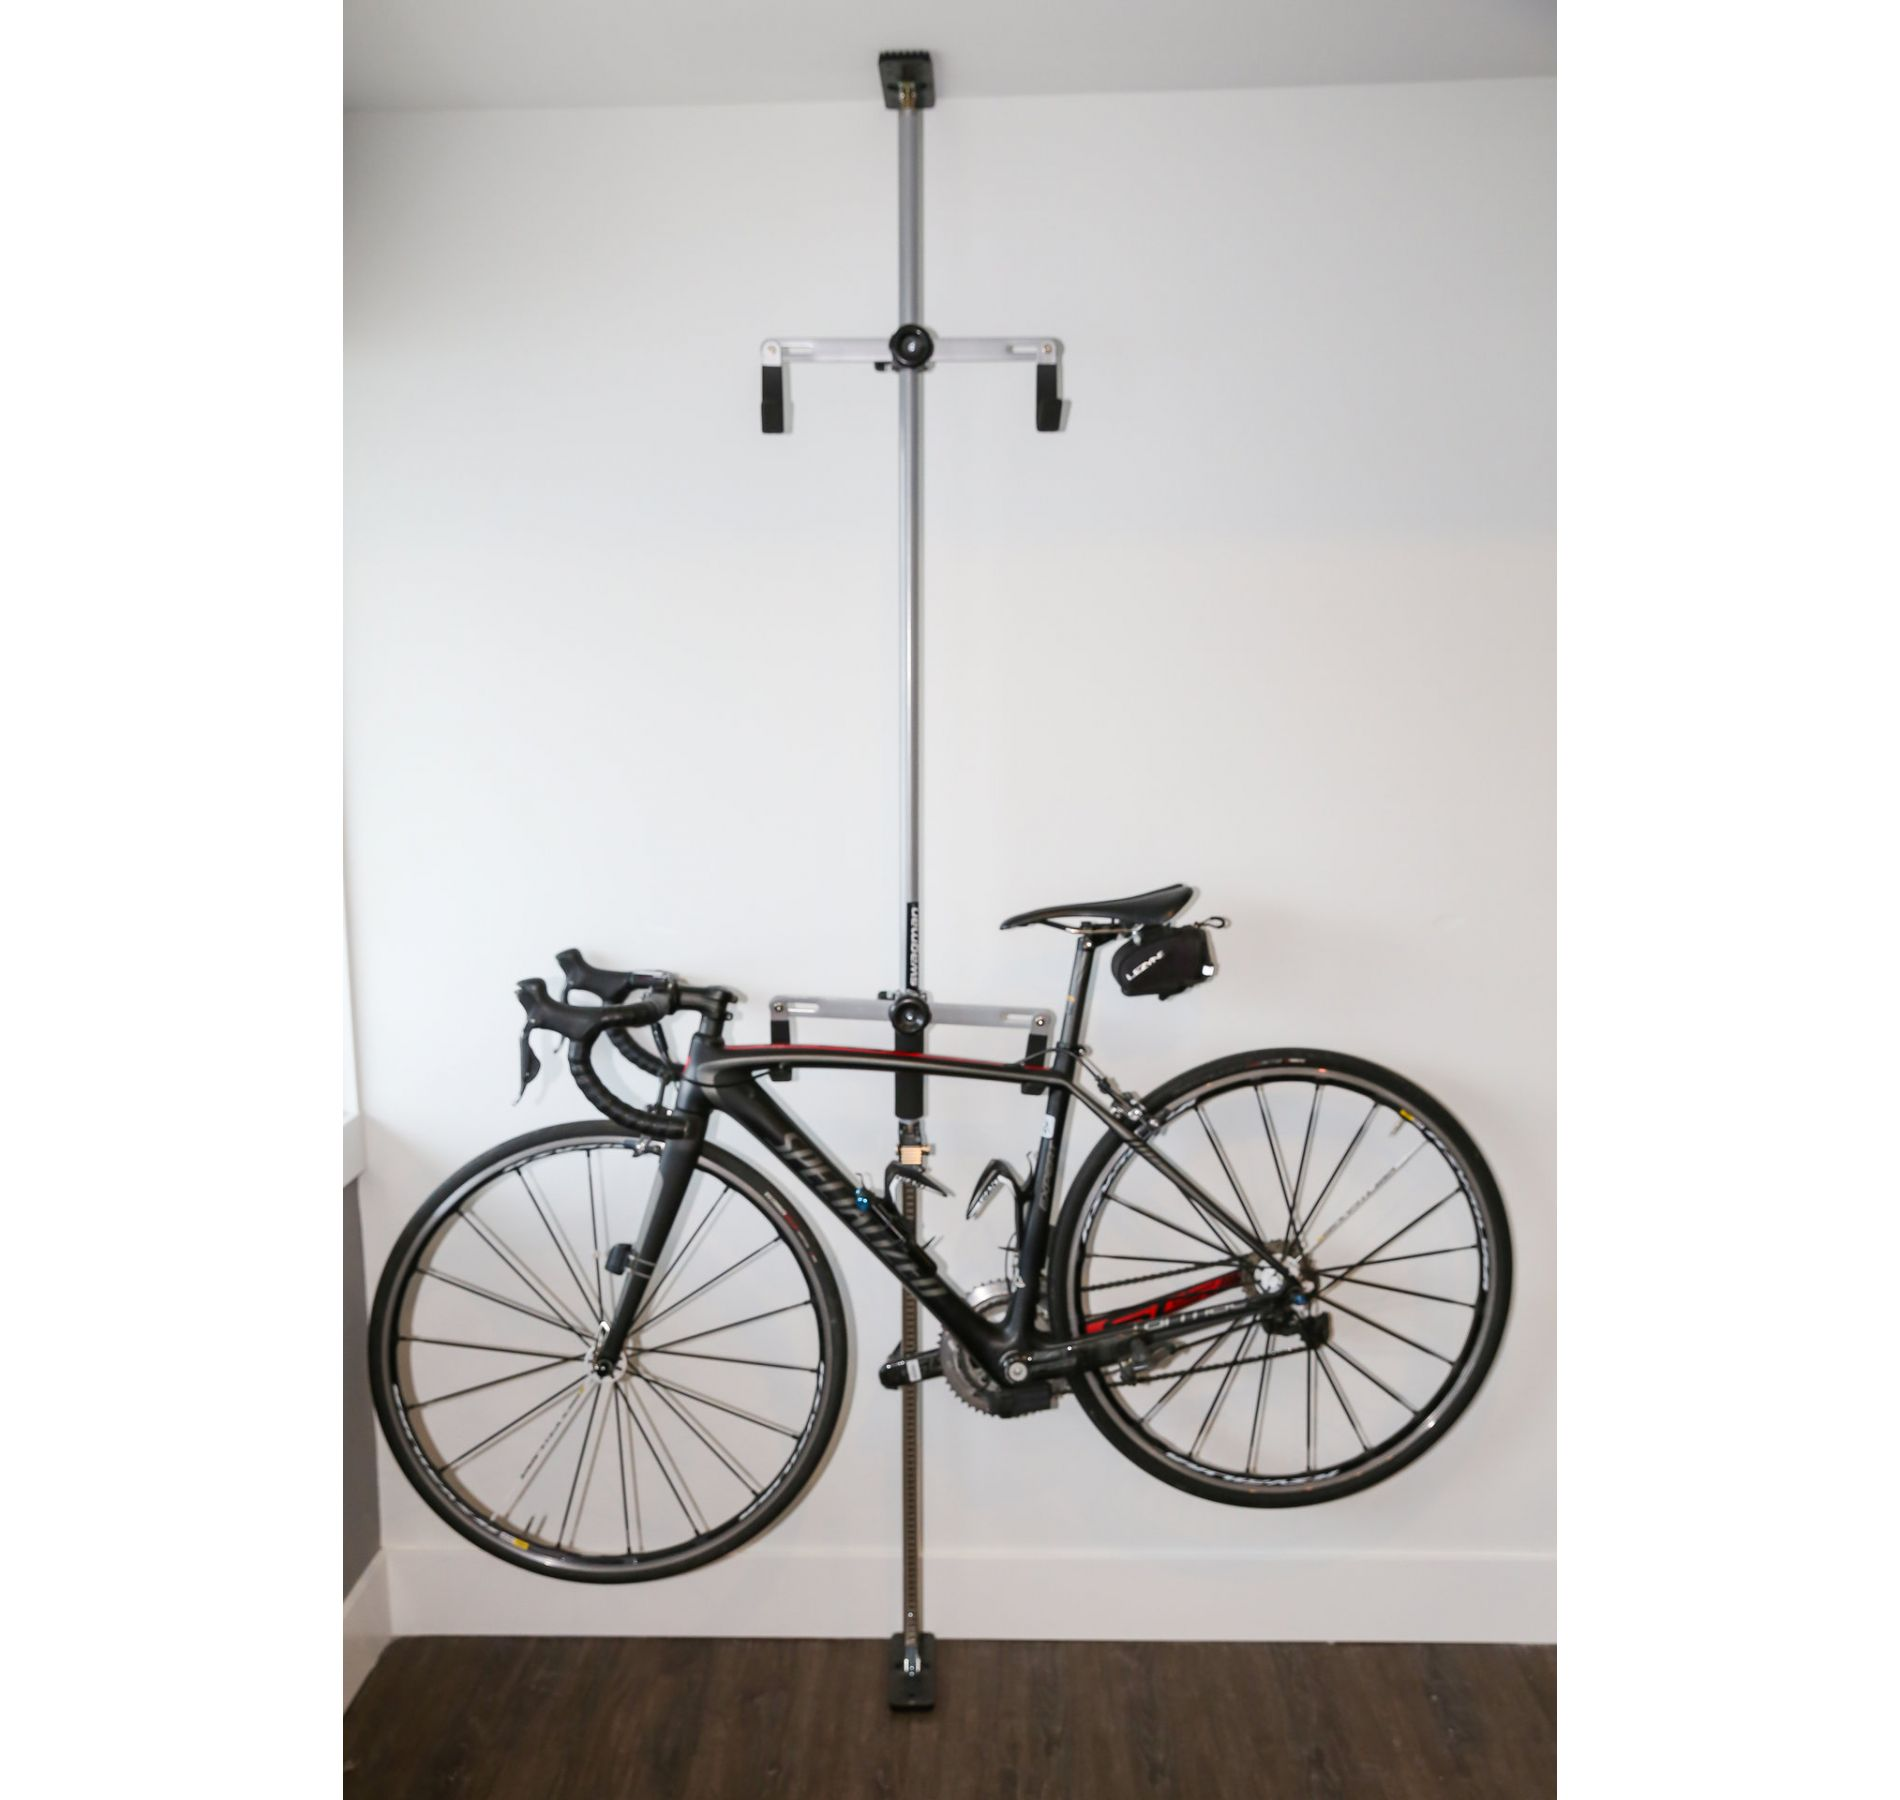 mount lift improvement tools ceiling amazon cargoloc home dp rack bike ca